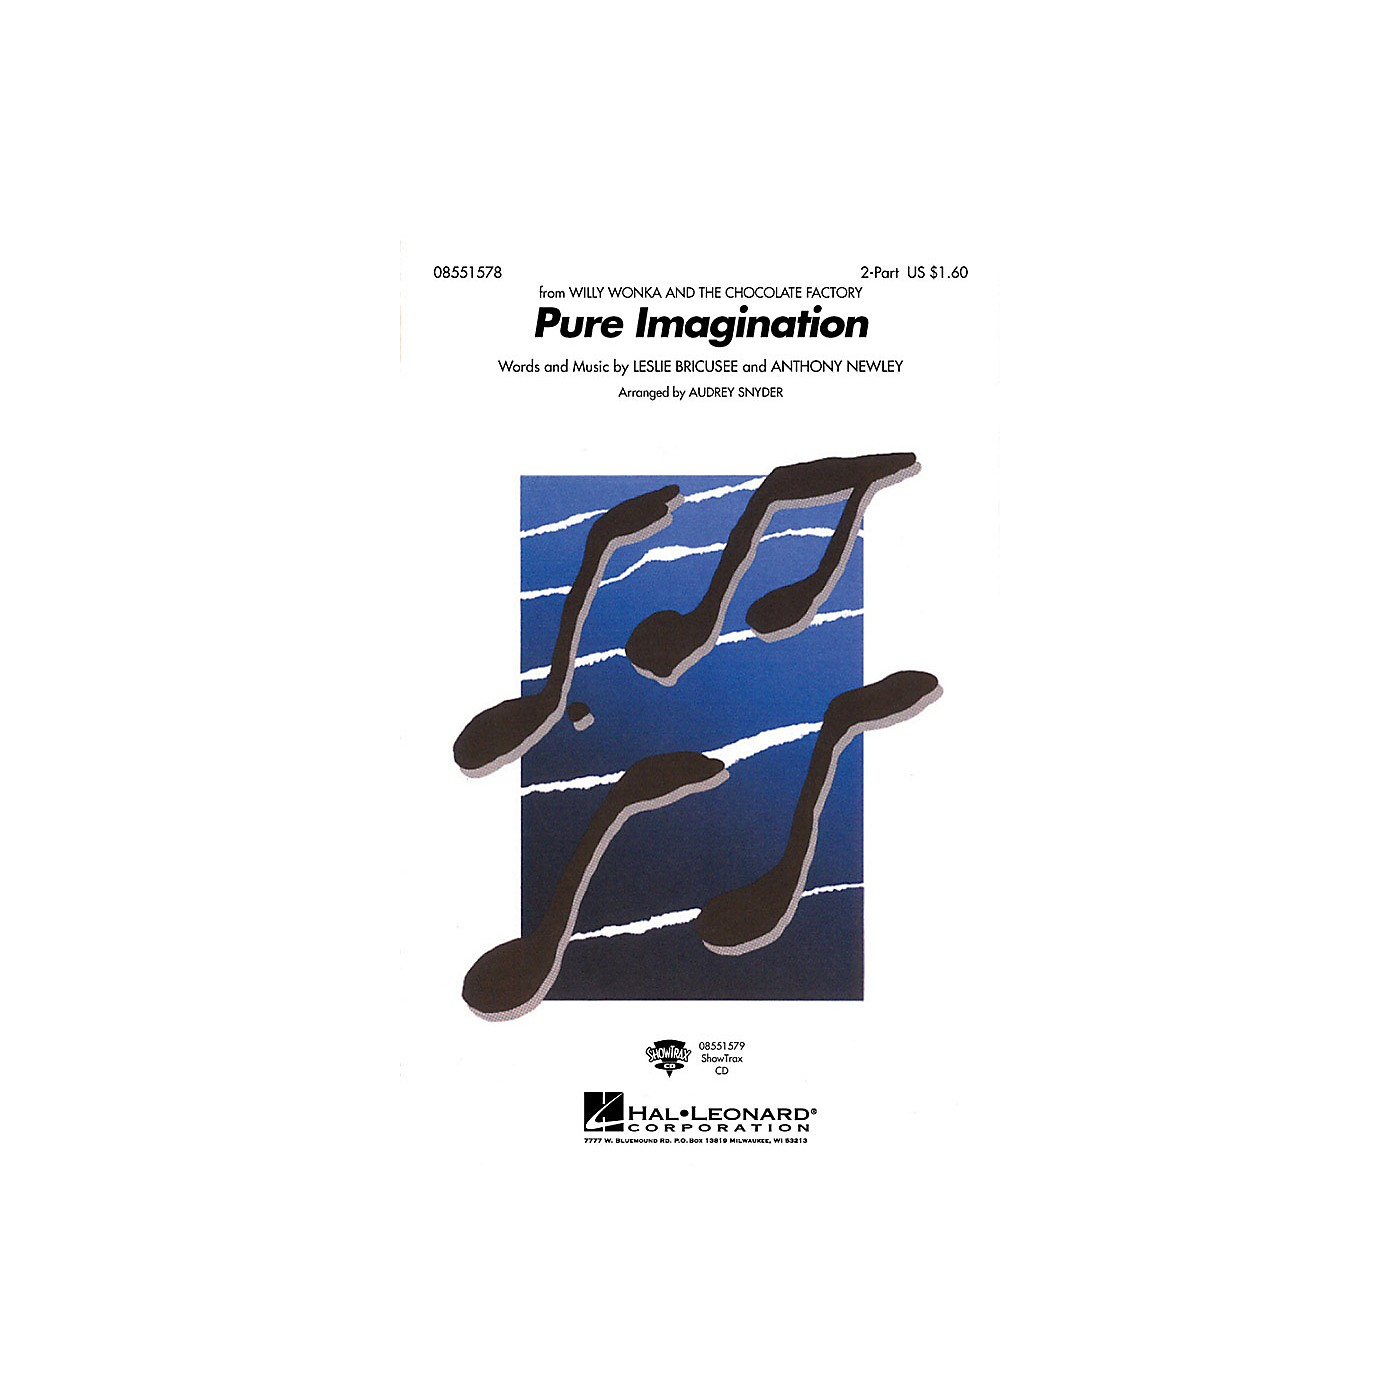 Hal Leonard Pure Imagination (from Willy Wonka and the Chocolate Factory) 2-Part arranged by Audrey Snyder thumbnail